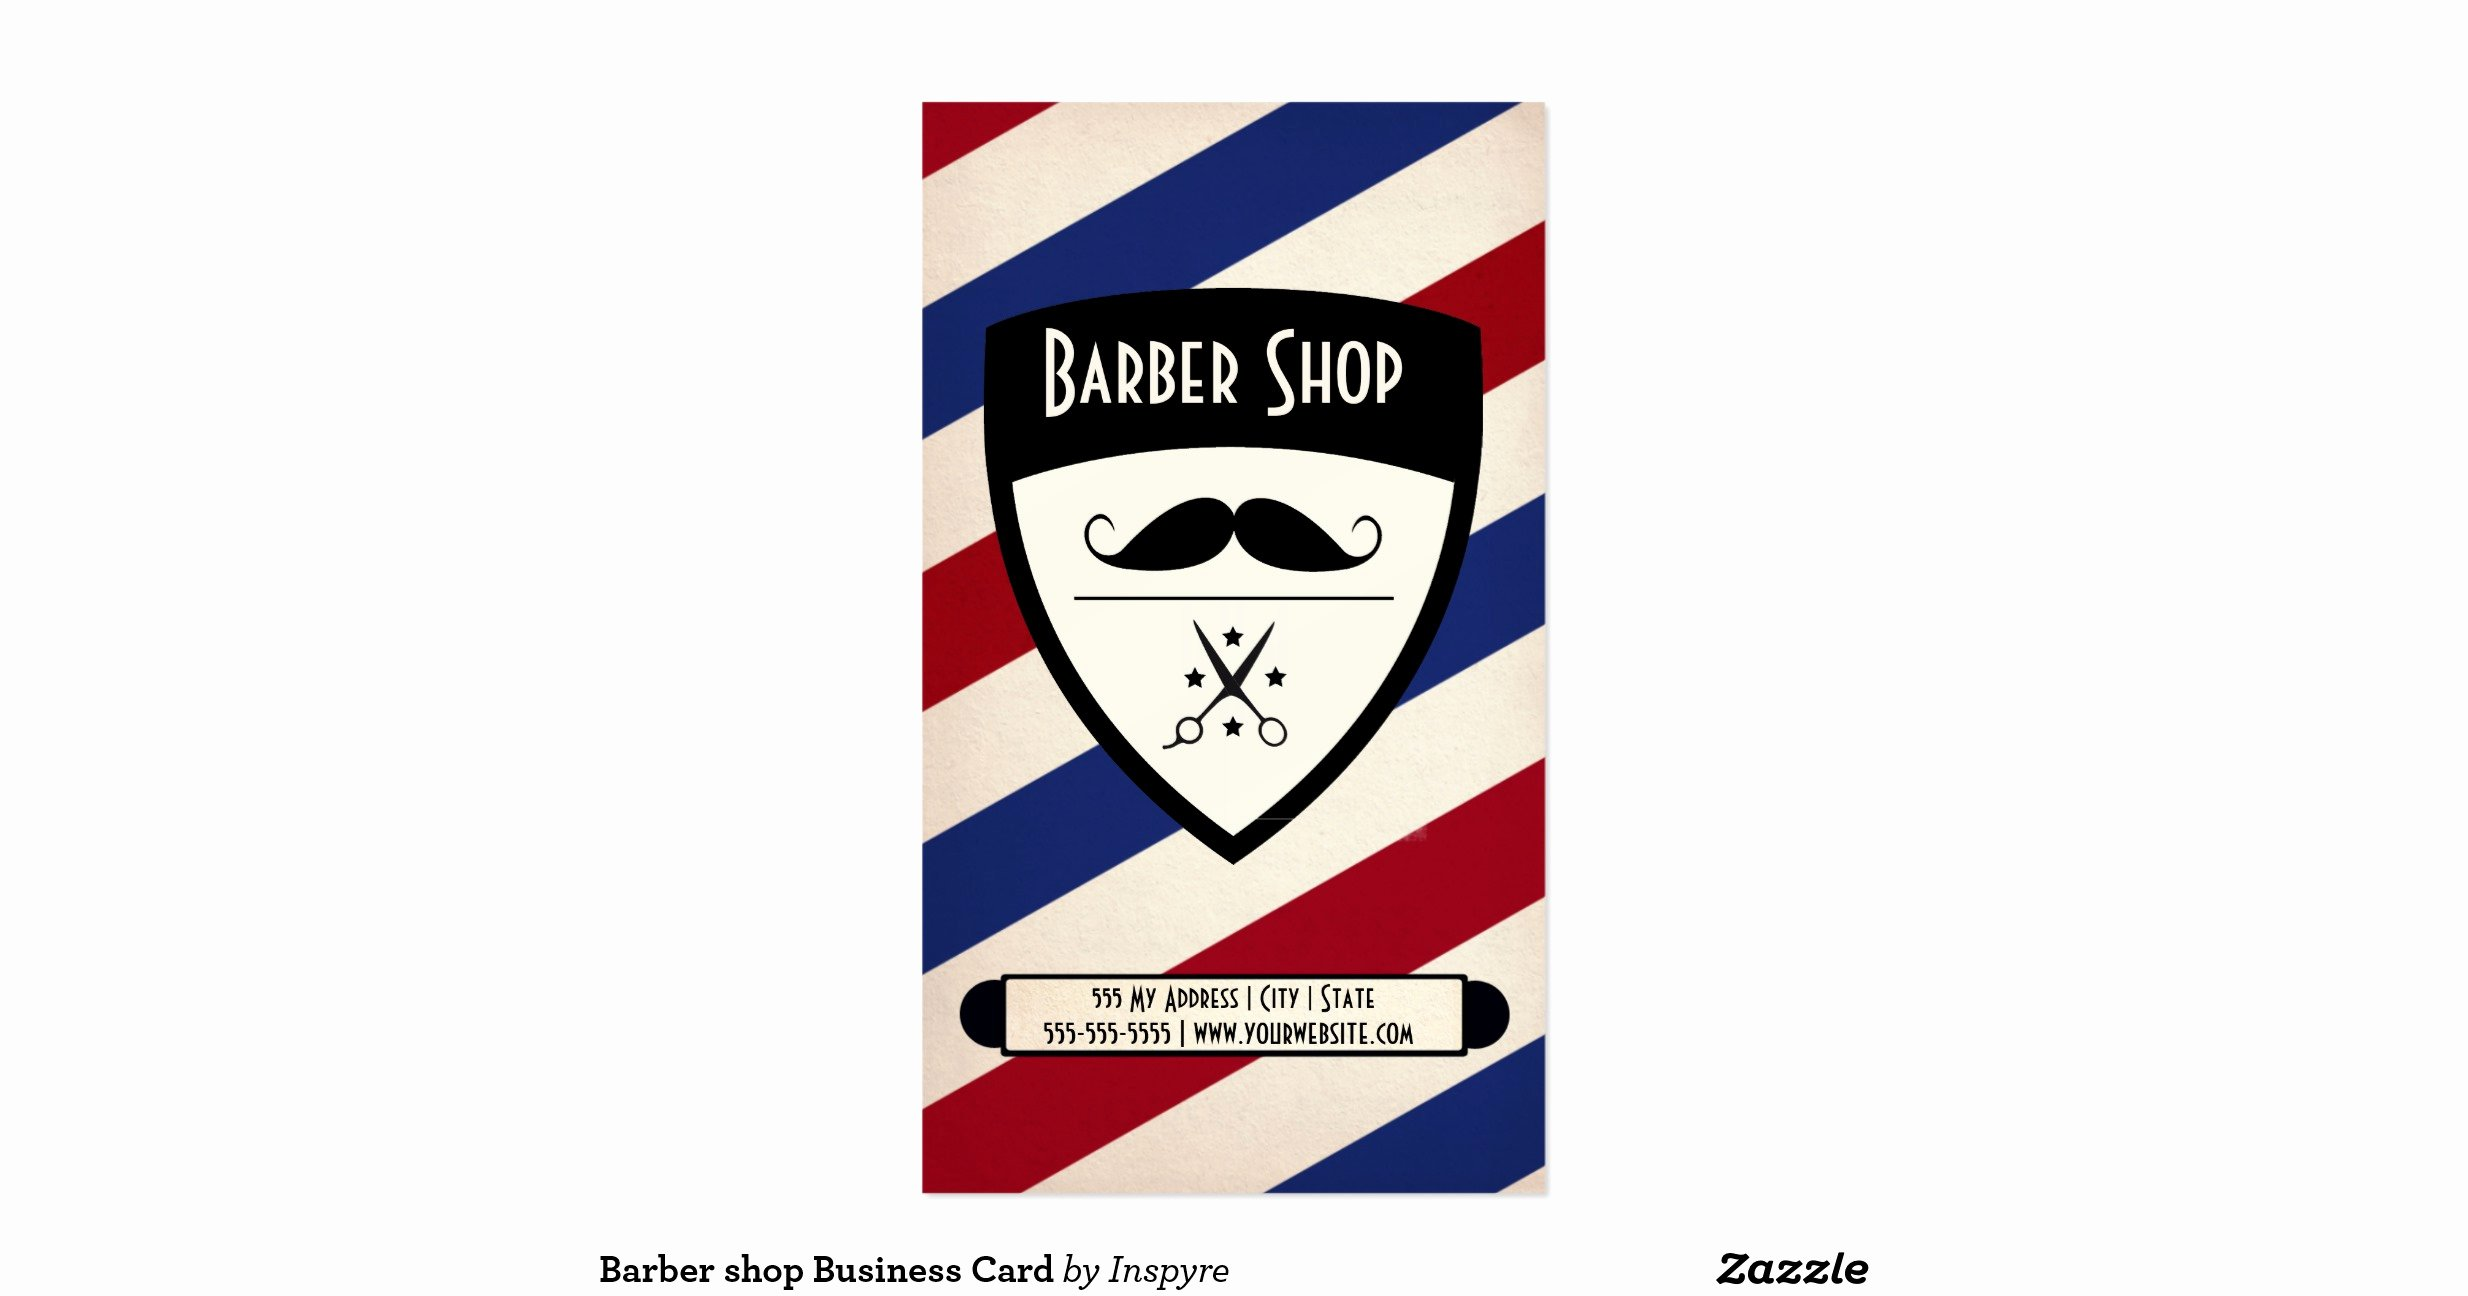 Barber Shop Business Card Awesome Barber Shop Business Card Ra0f203f89fa9445c85f0db3791b4a064 I579g 8byvr 1200 View Padding